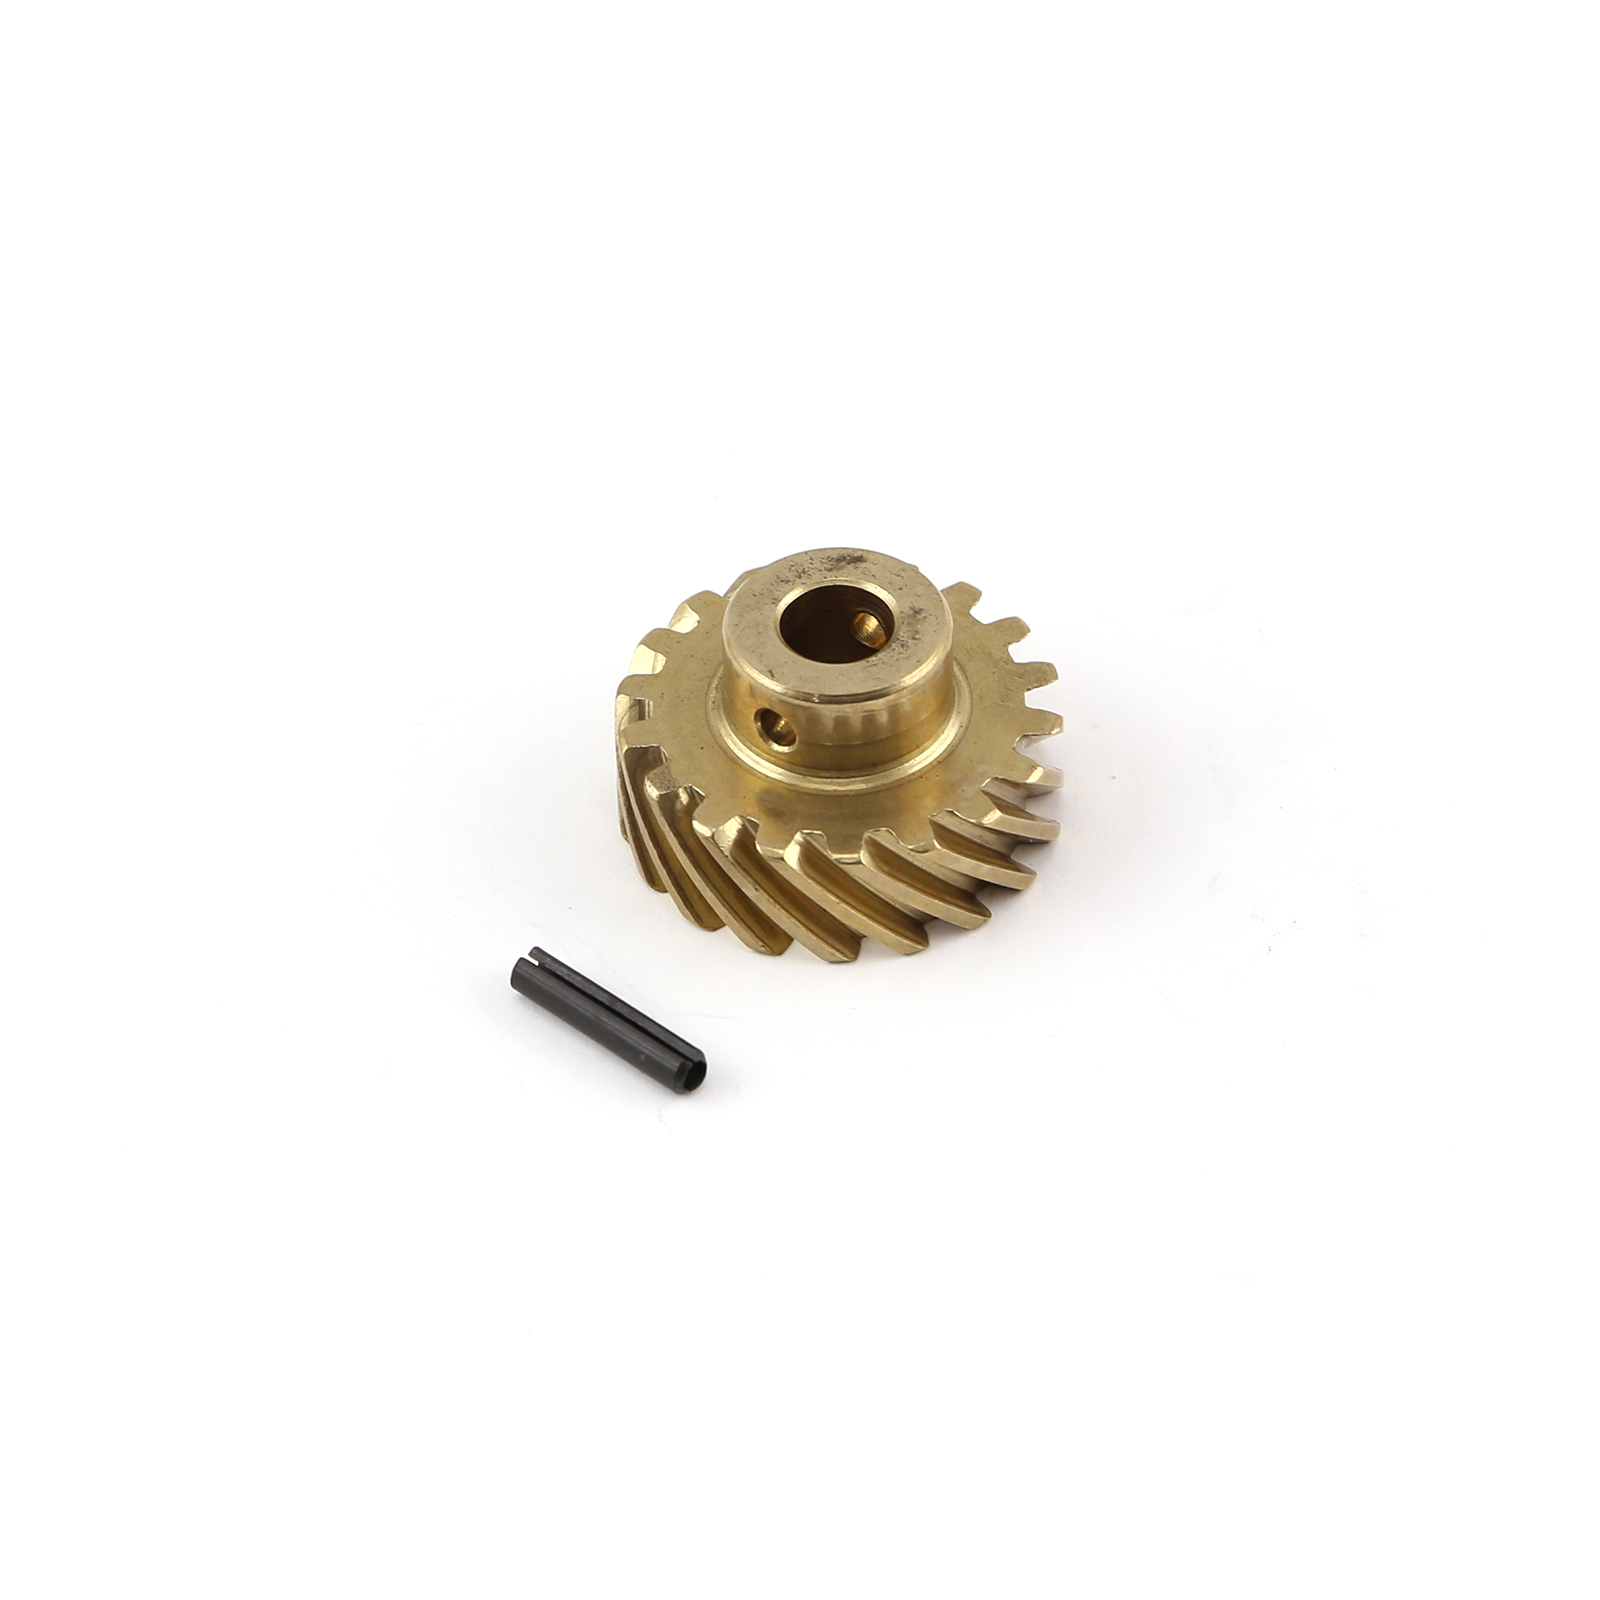 Mopar Chrysler SB 318 340 360 5.2 5.9 Bronze .484 Shaft Distributor Gear